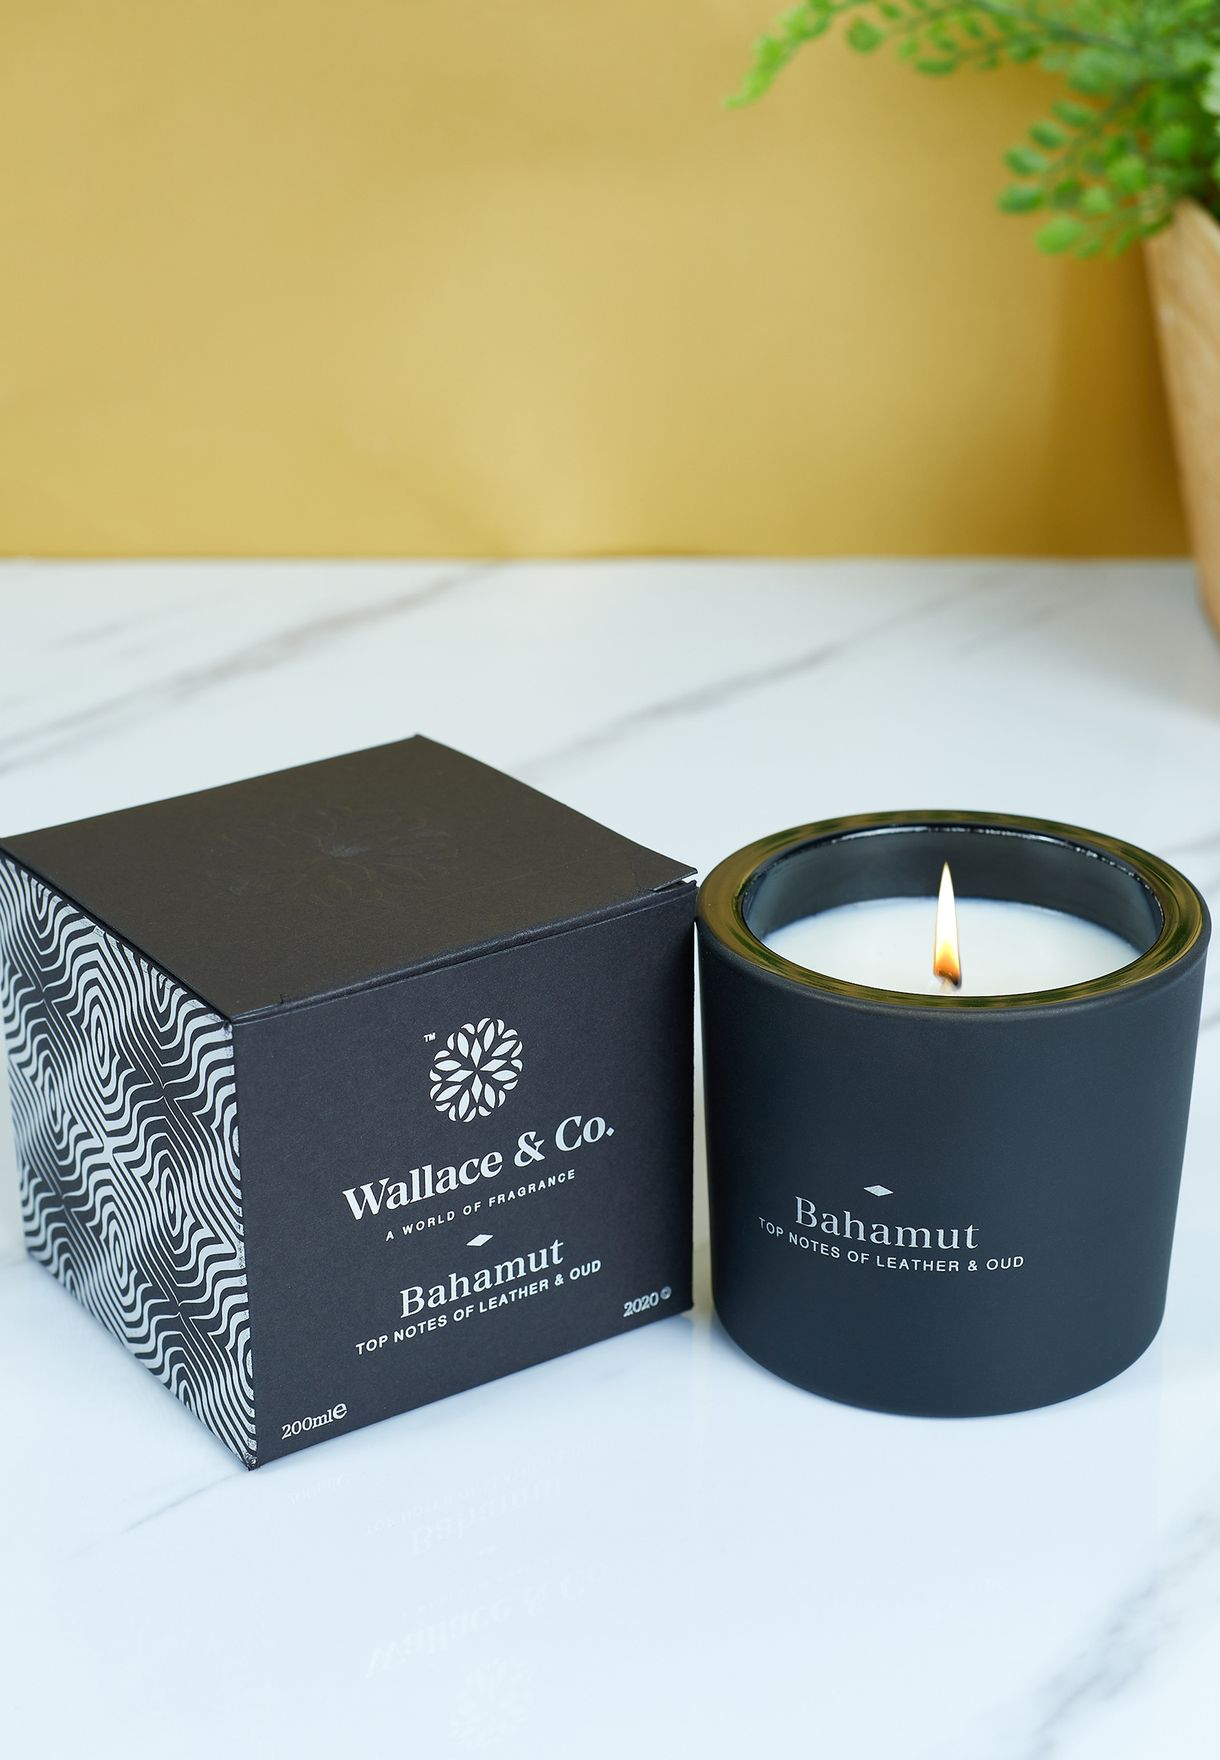 Leather & Oud Bahamut Scented Candle 200ml